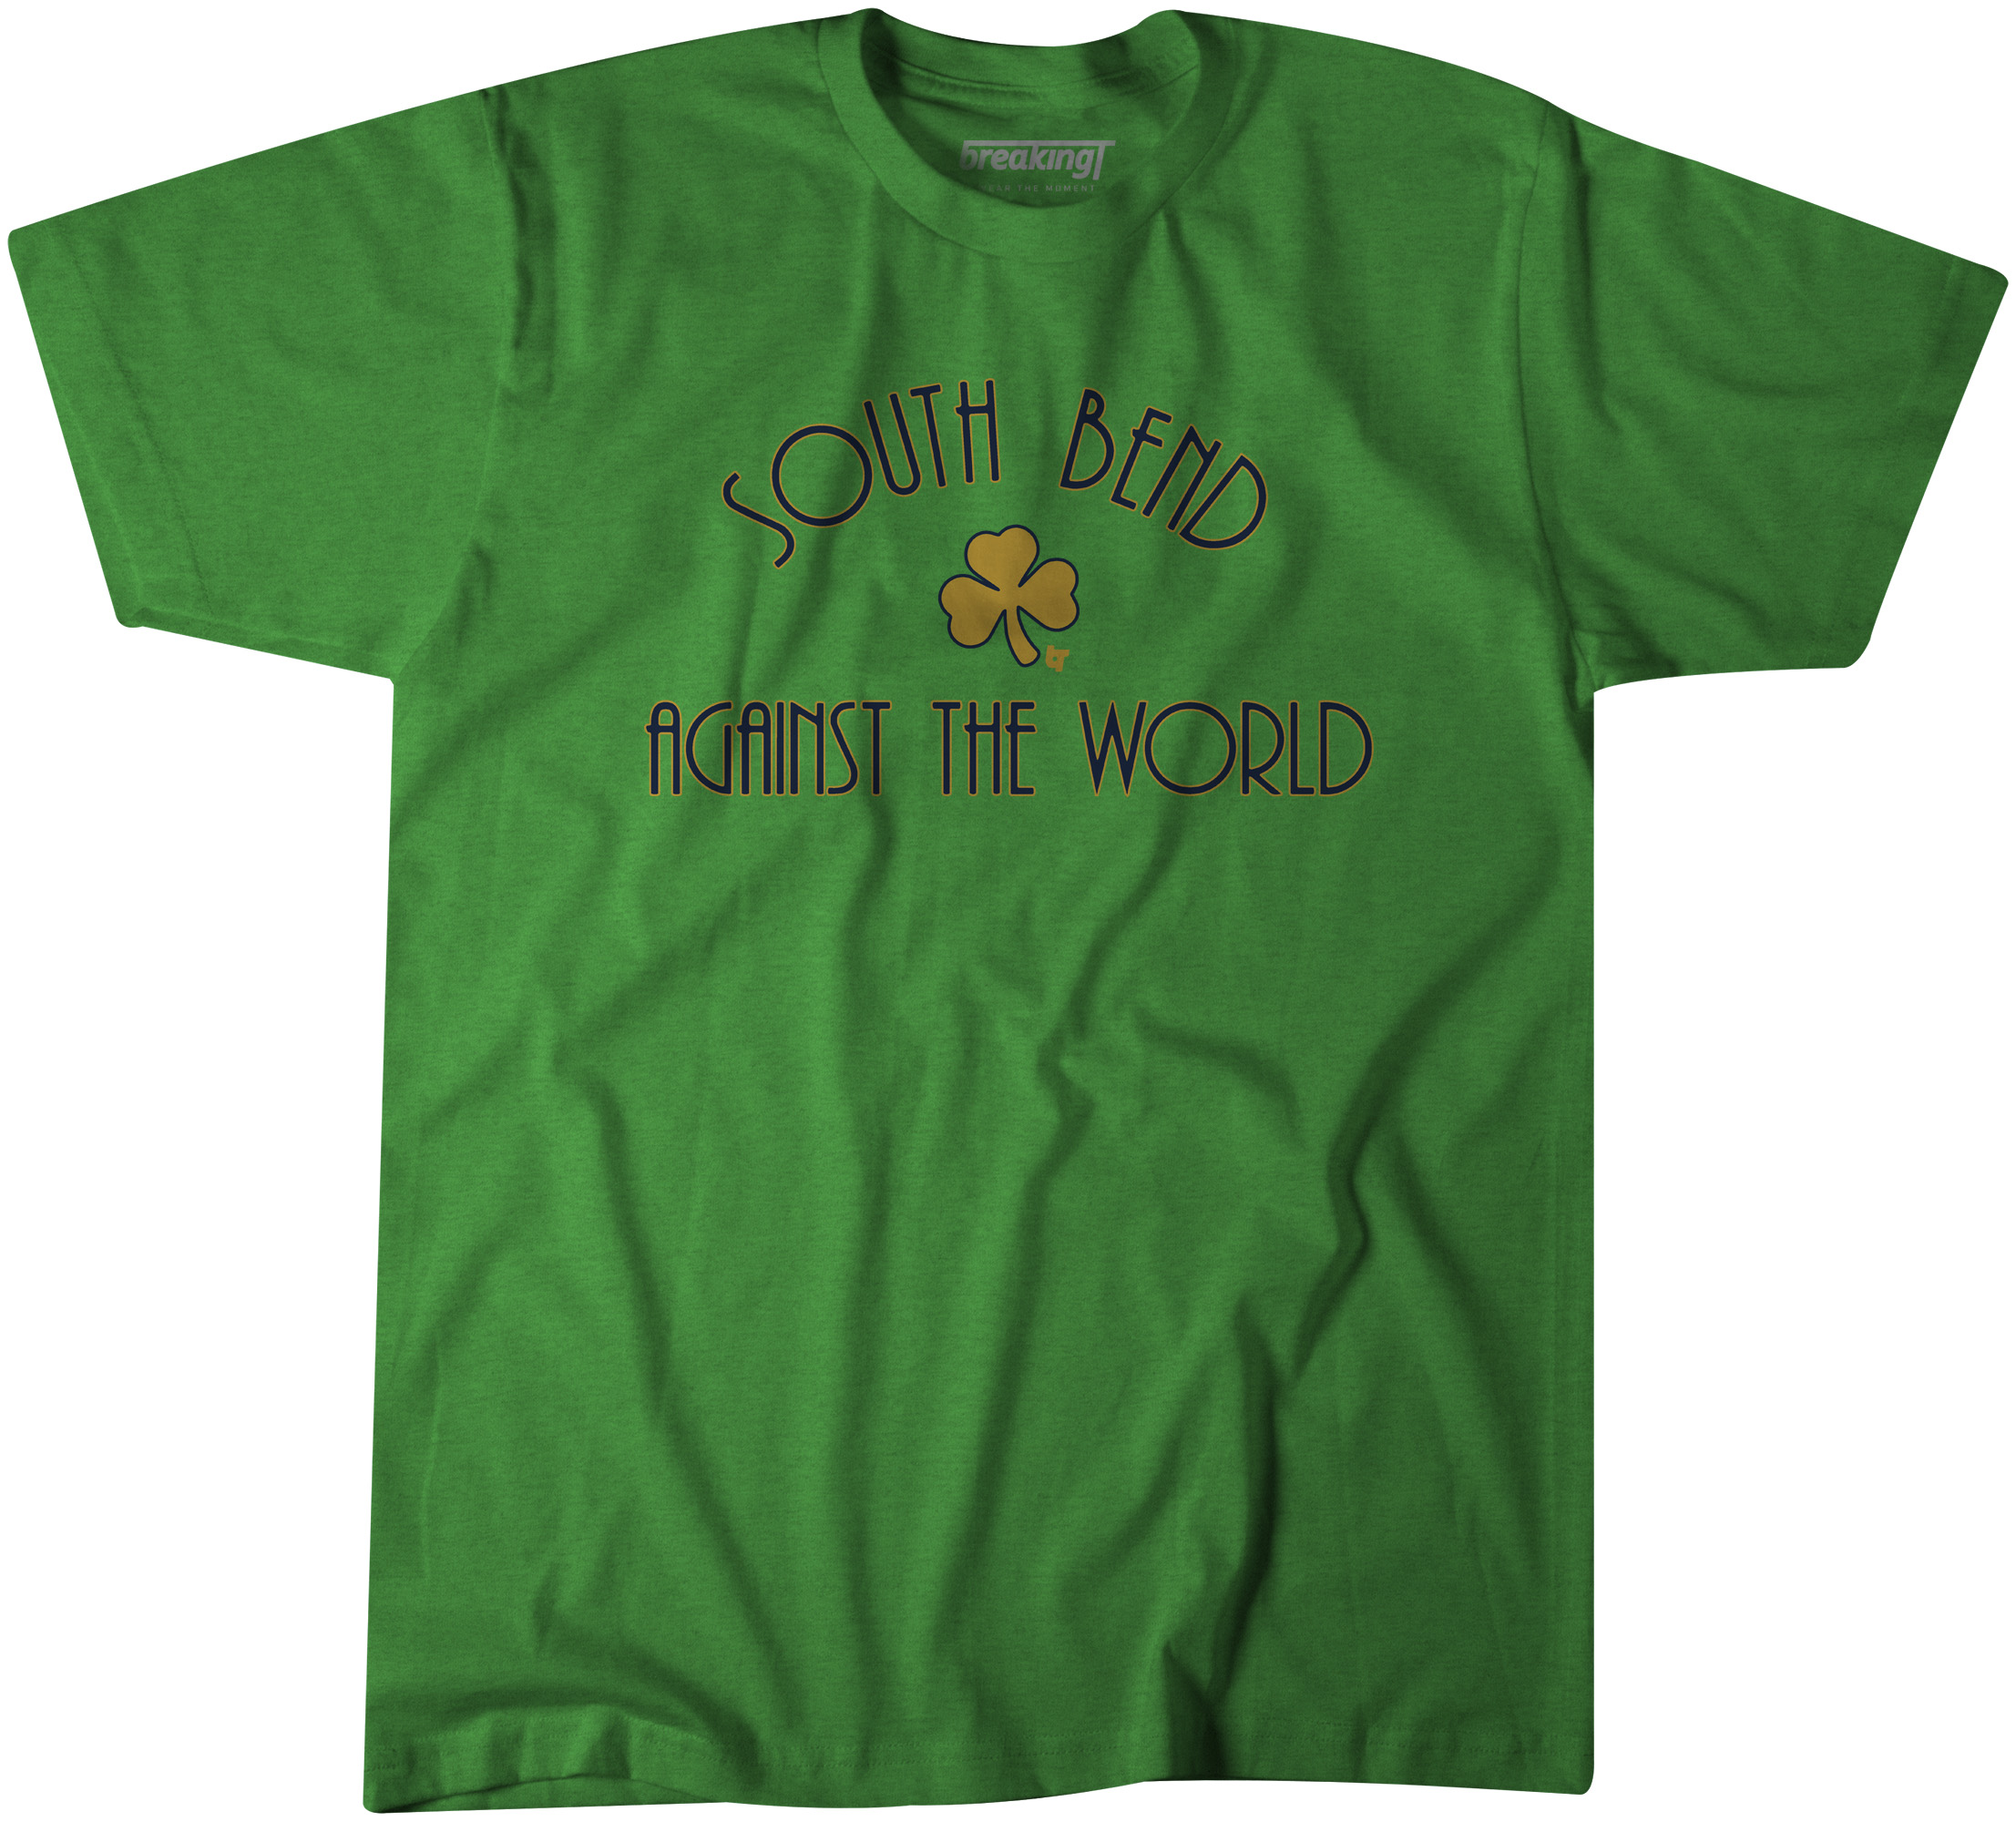 south bend against the world shirt notre dame football